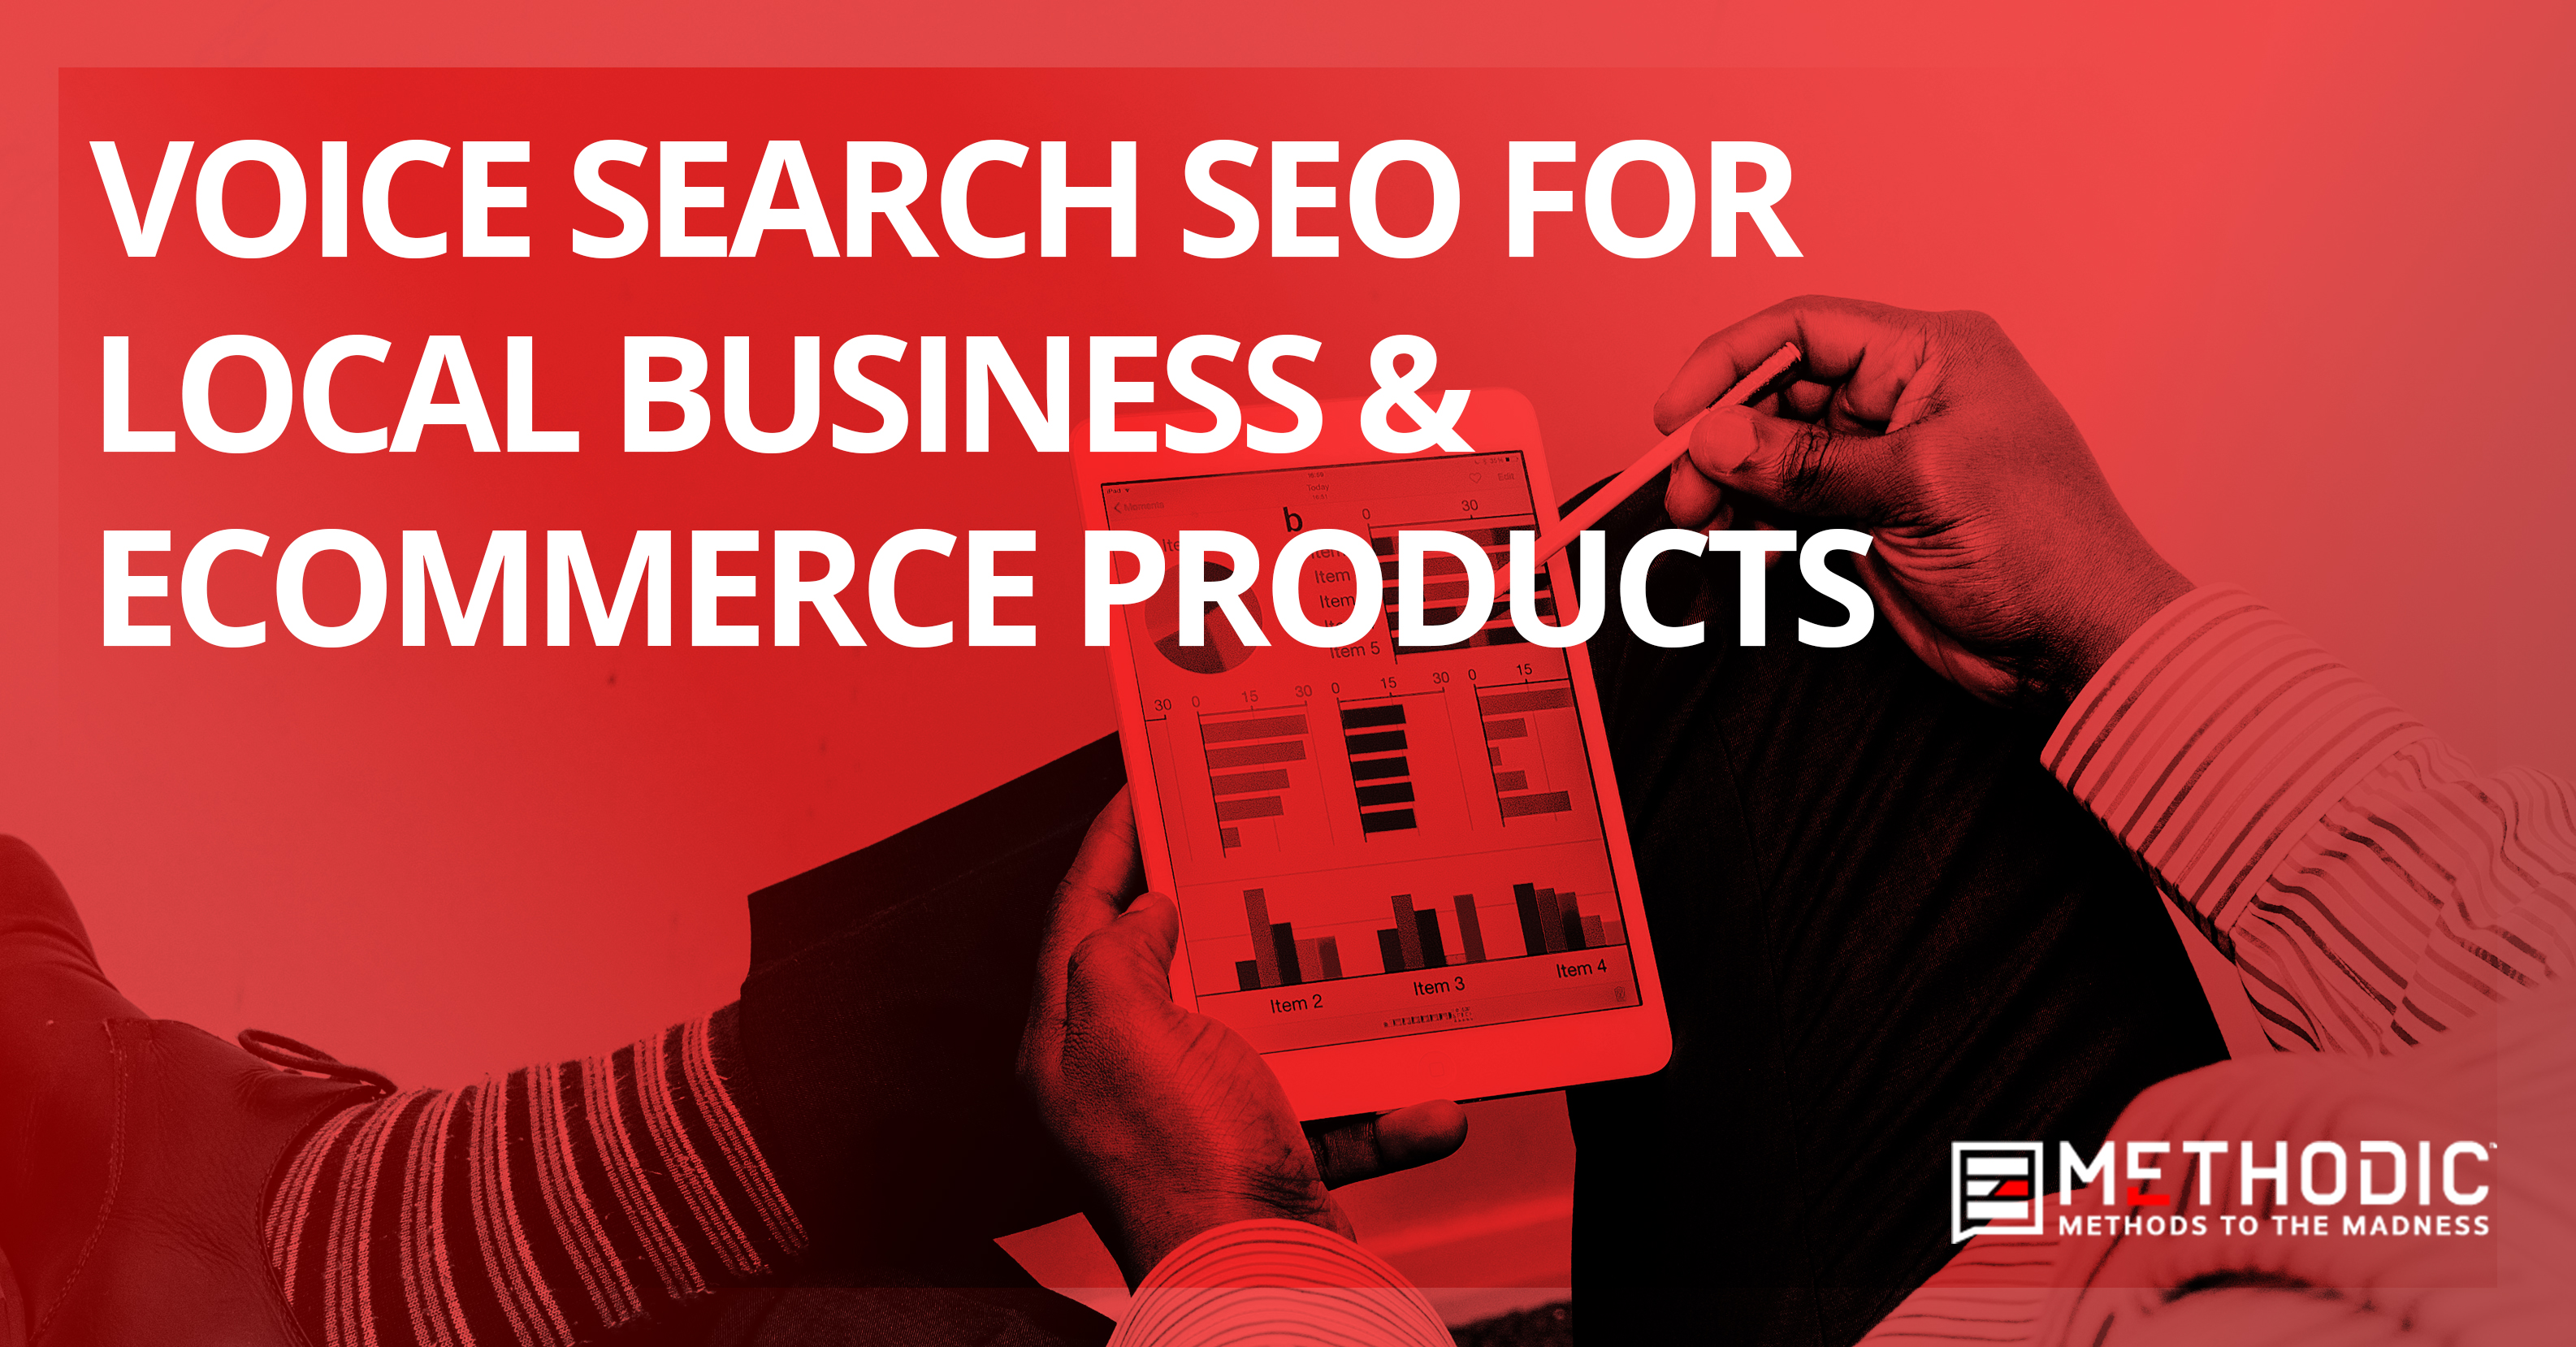 Voice Search SEO for Local Business & Ecommerce Products